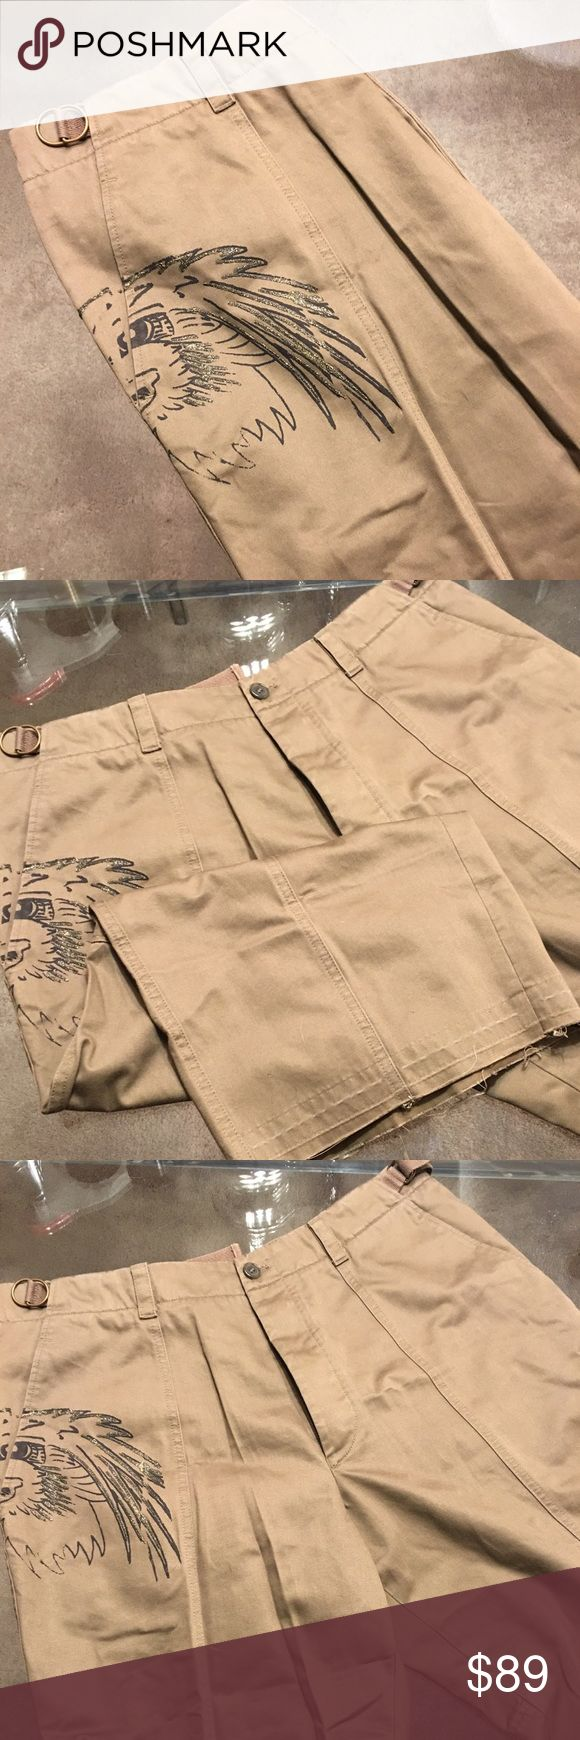 🌟HUGO BOSS MENS SHORTS 💯 AUTHENTIC HUGO BOSS MENS LONG SHORTS 💯AUTHENTIC. OLIVE GREEN EAGLE PRINTED SHORTS. VERY HIGH END DESIGNER FASHION LOOK. THEY FALL ROUGHLY CALF LENTH. THEY ARE SIZE TAGGED AT A 38 Hugo Boss Shorts Hybrids